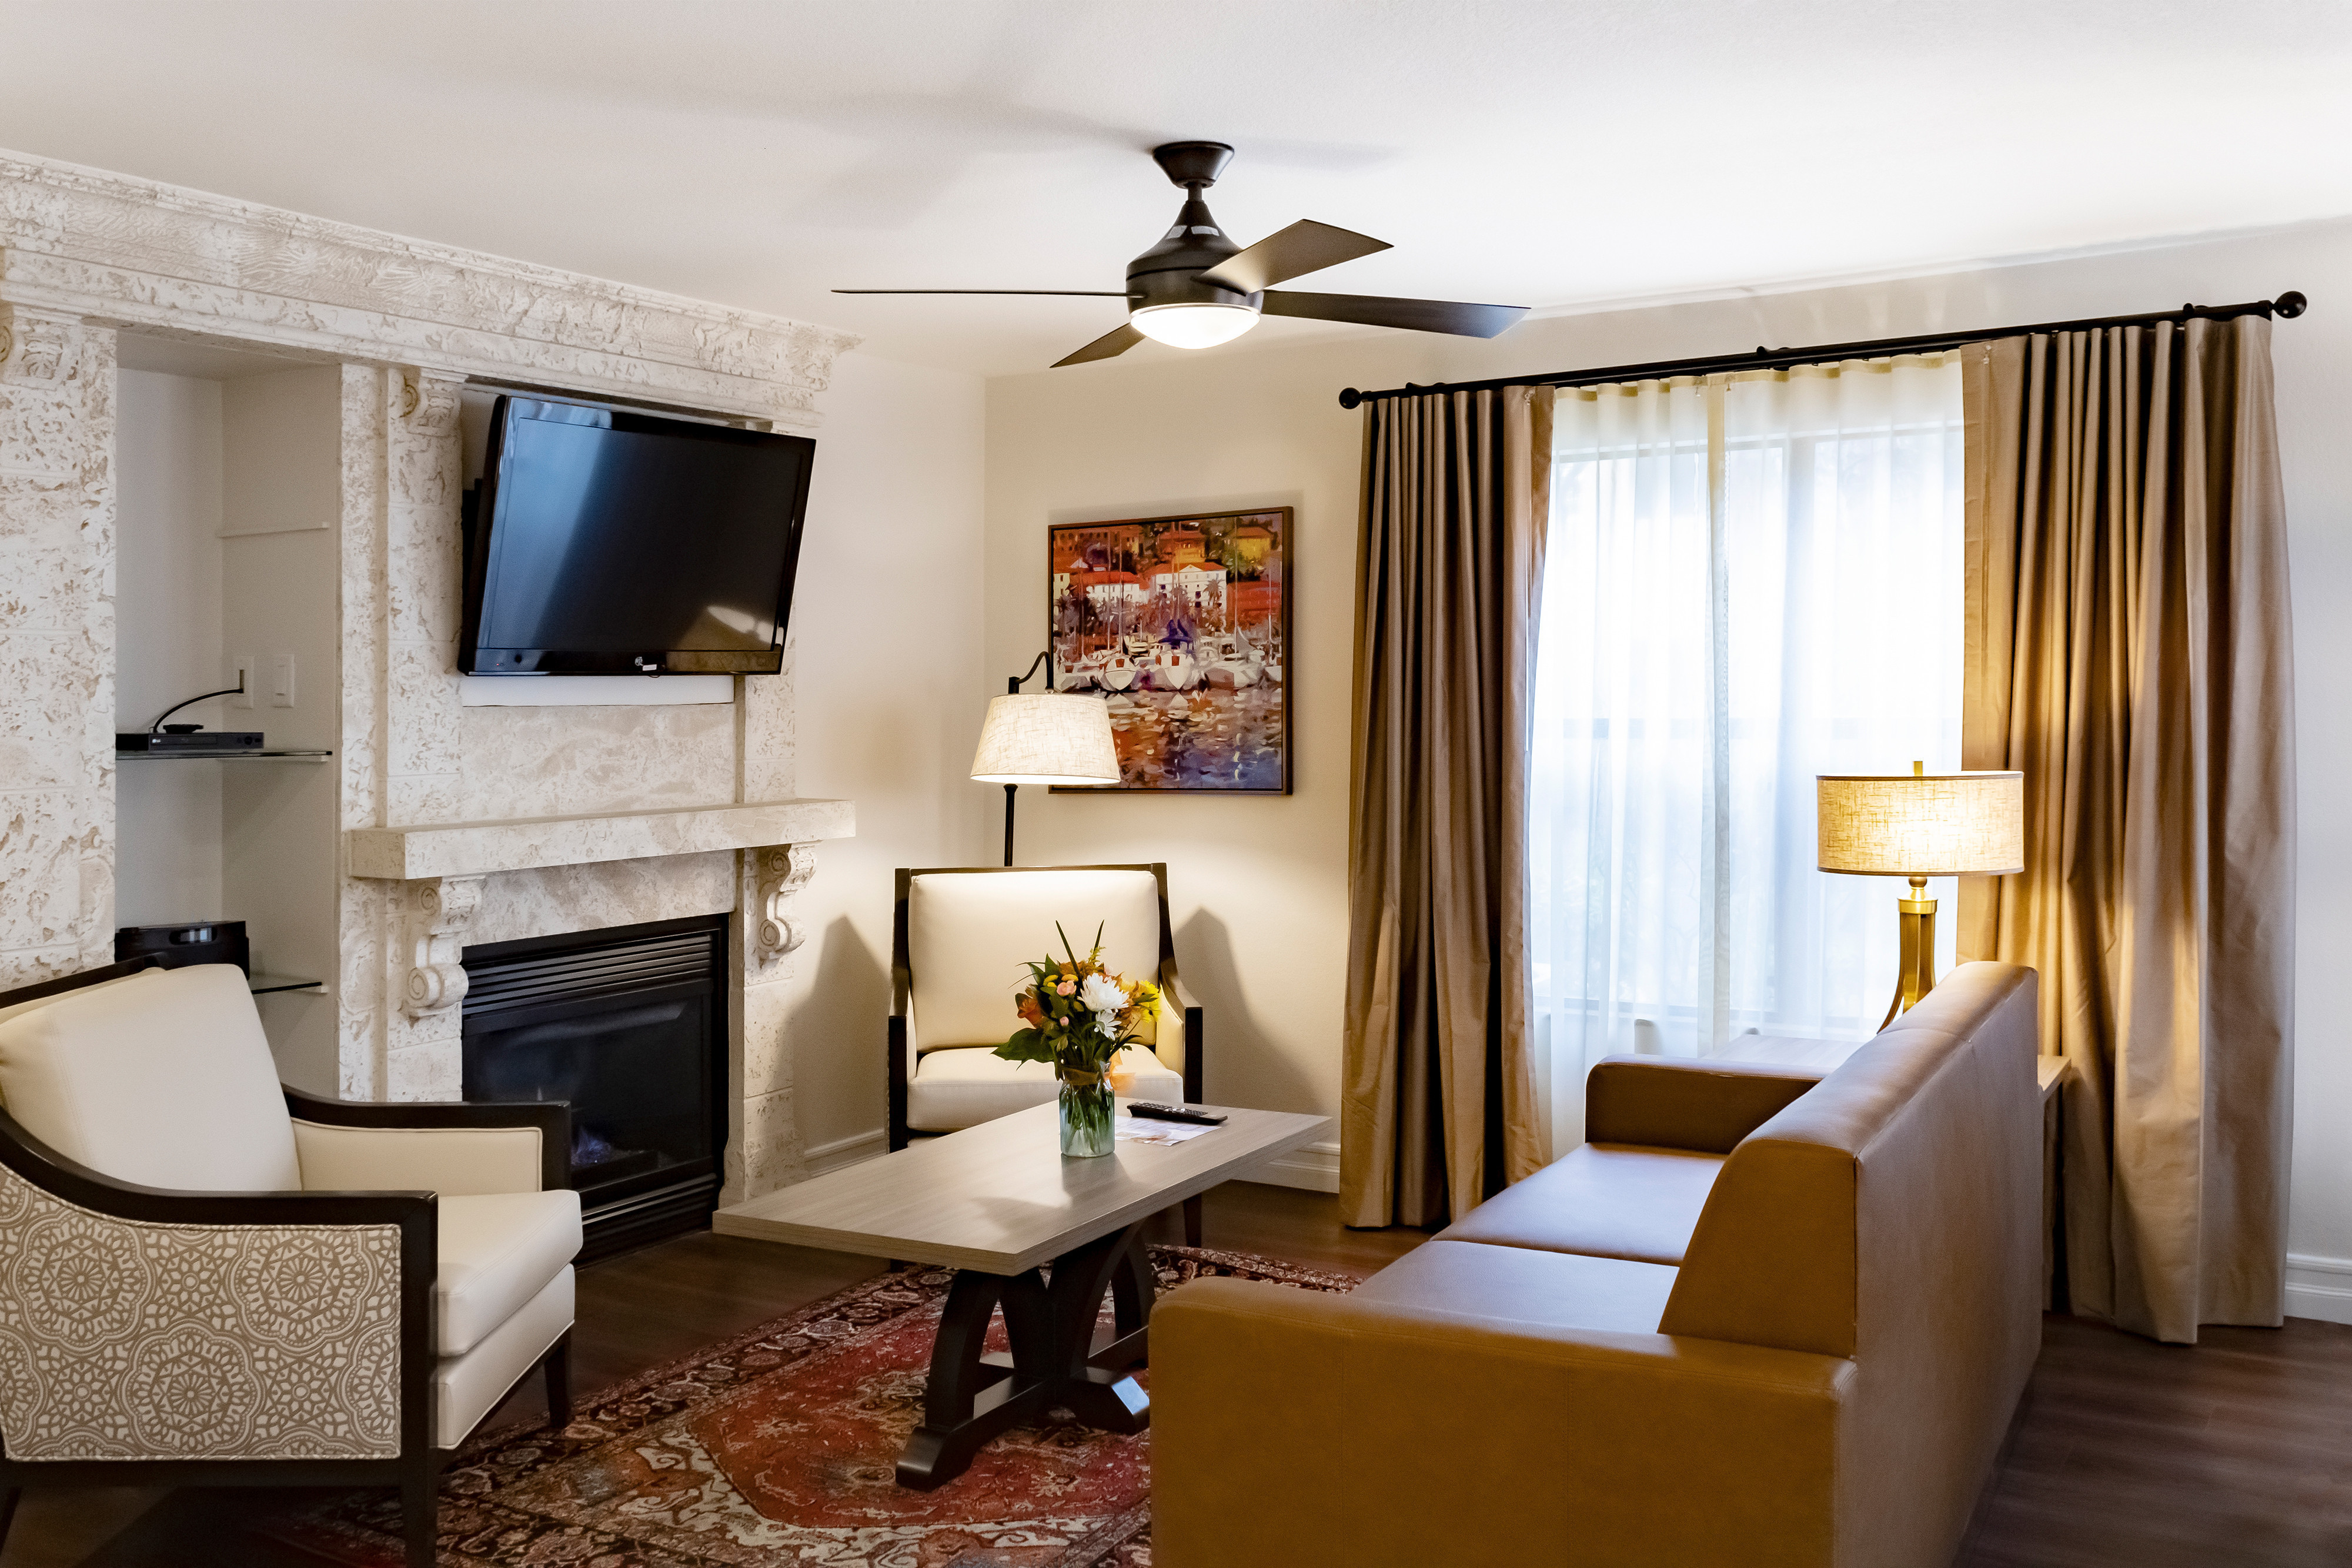 Looking for a perfect Las Vegas Vacation Getaway? The spacious One-Bedroom Deluxe Villa at Westgate Flamingo Bay Resort creates the ideal setting for an incredible Las Vegas vacation getaway.